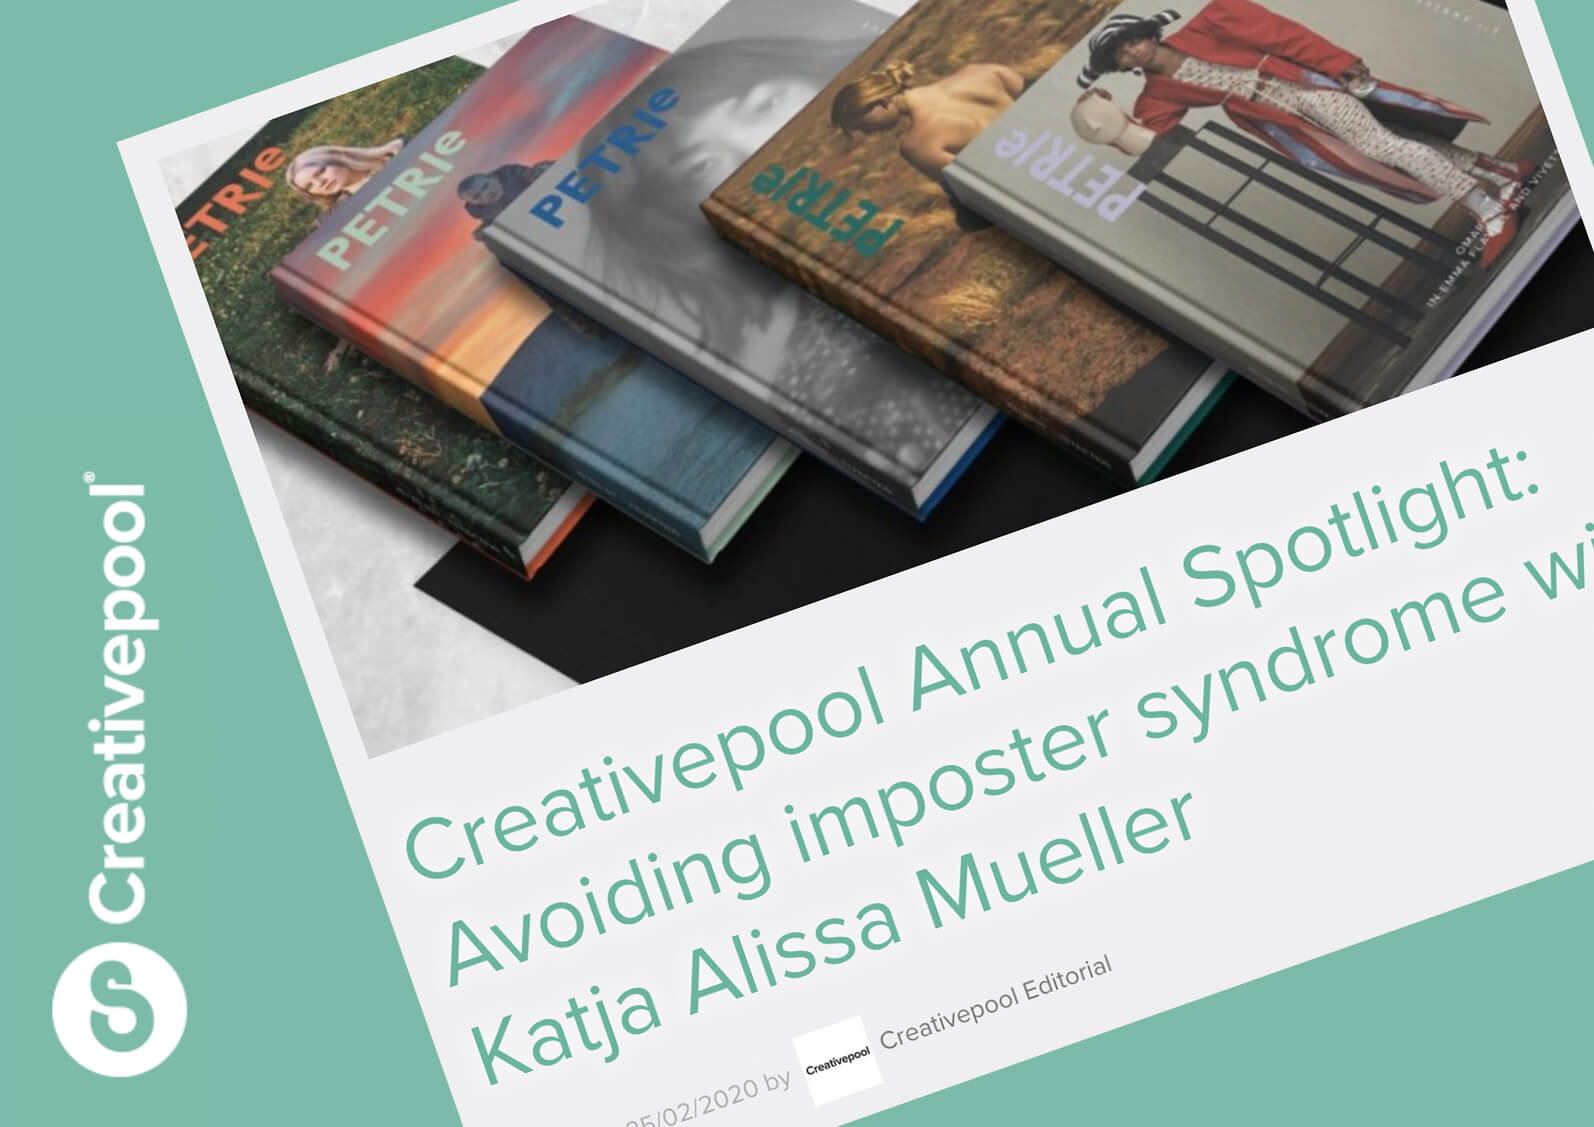 Creativepool annual spotlight interview announcement